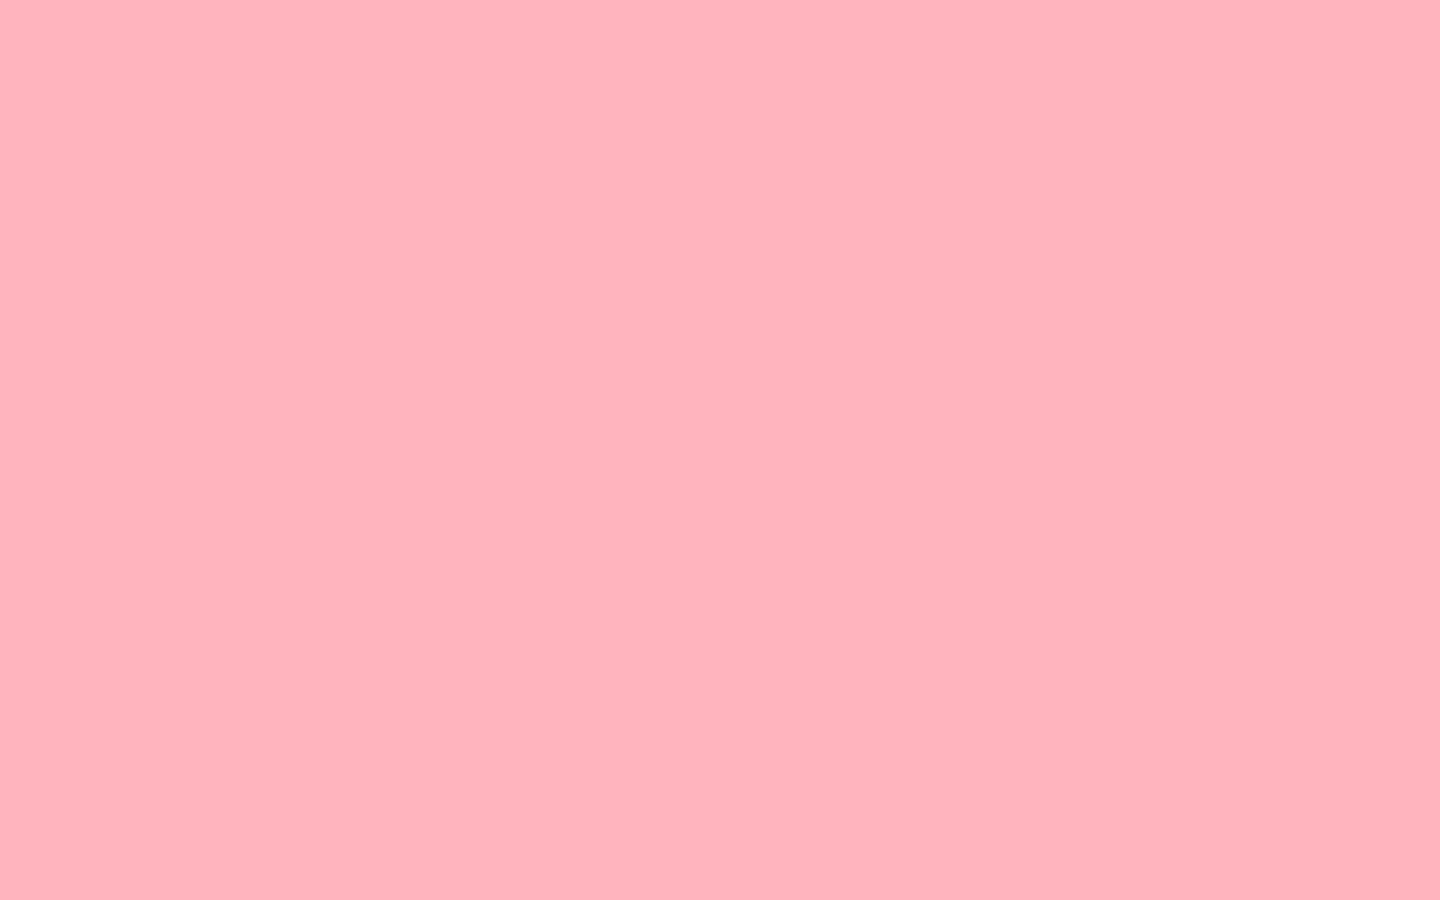 1440x900 Light Pink Solid Color Background